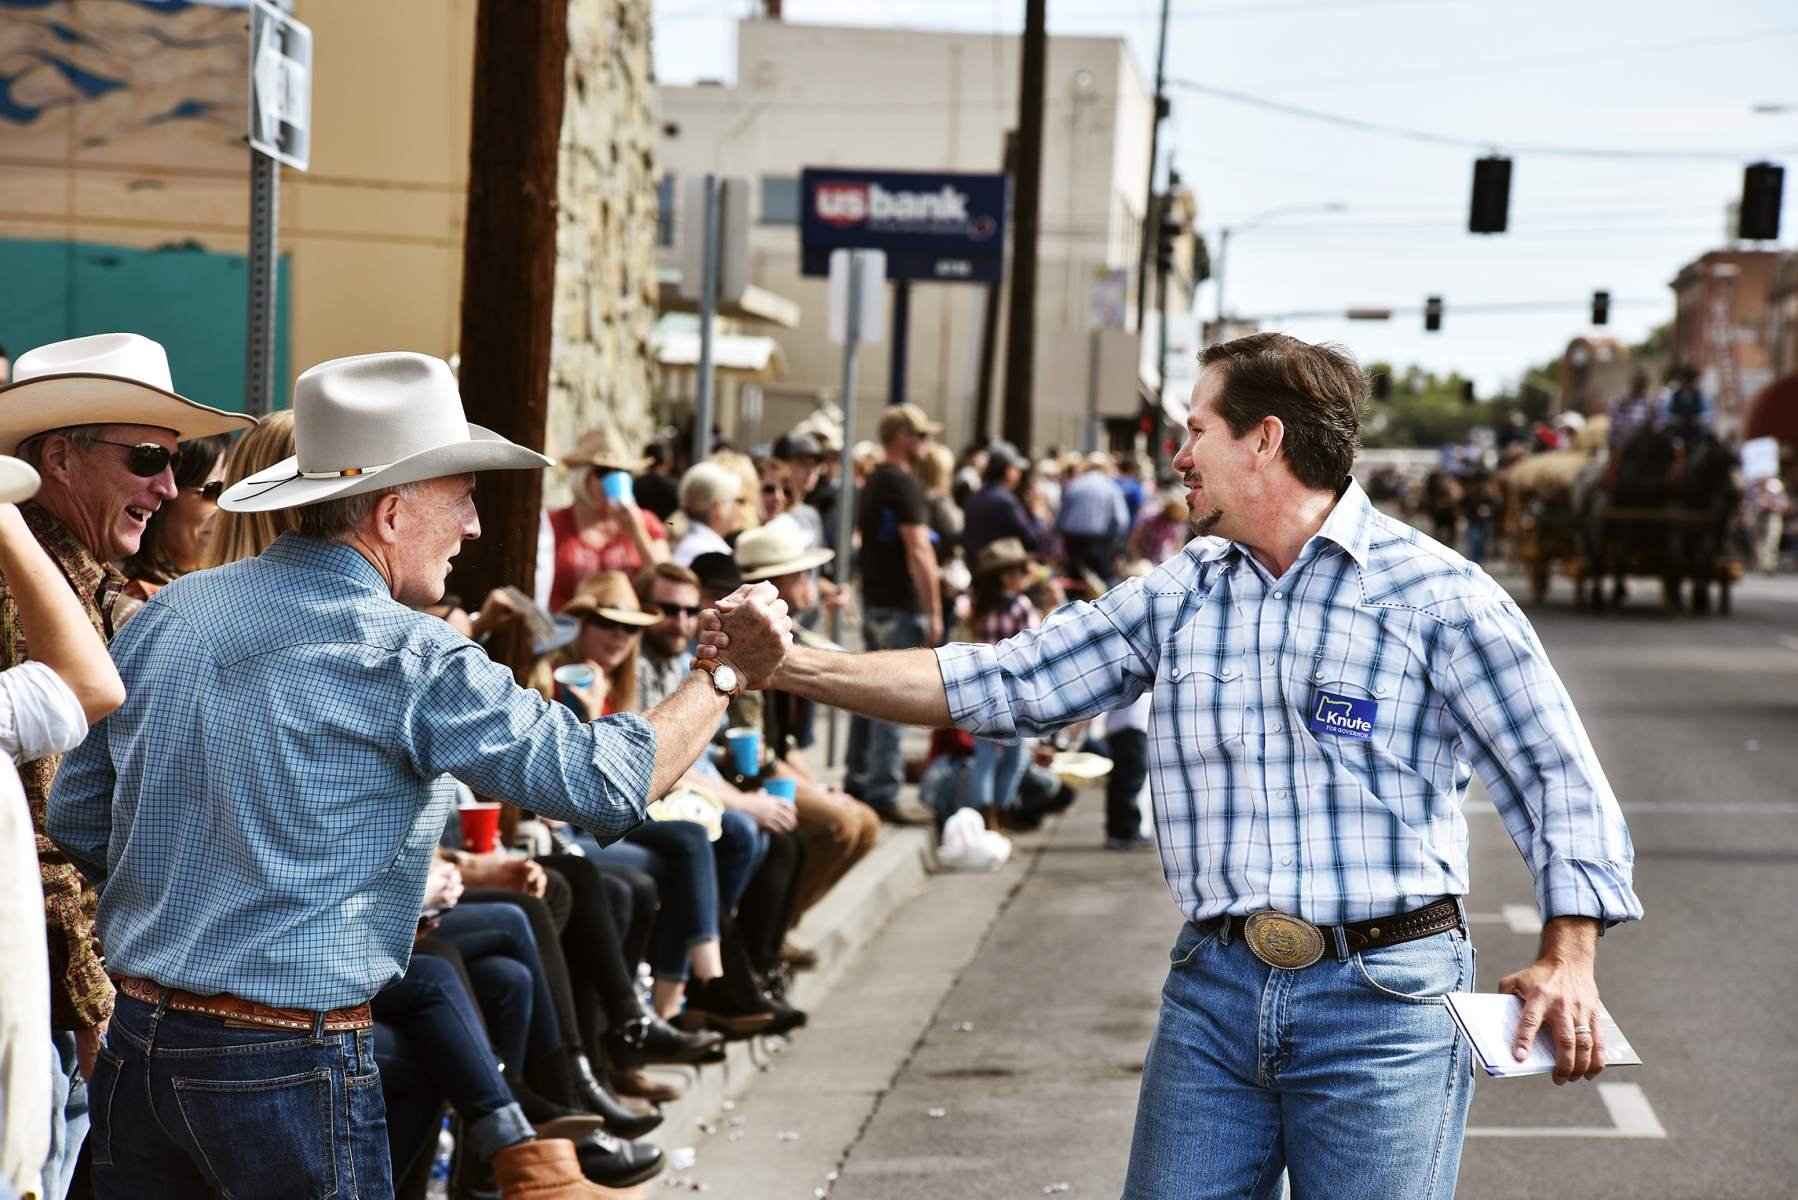 Polls show the Oregon gubernatorial race is close enough heading into the November 6 election to wonder what a Republican governor in reliably blue-state Oregon would look like. (Photo Credit: E.J. Harris/East Oregonian)